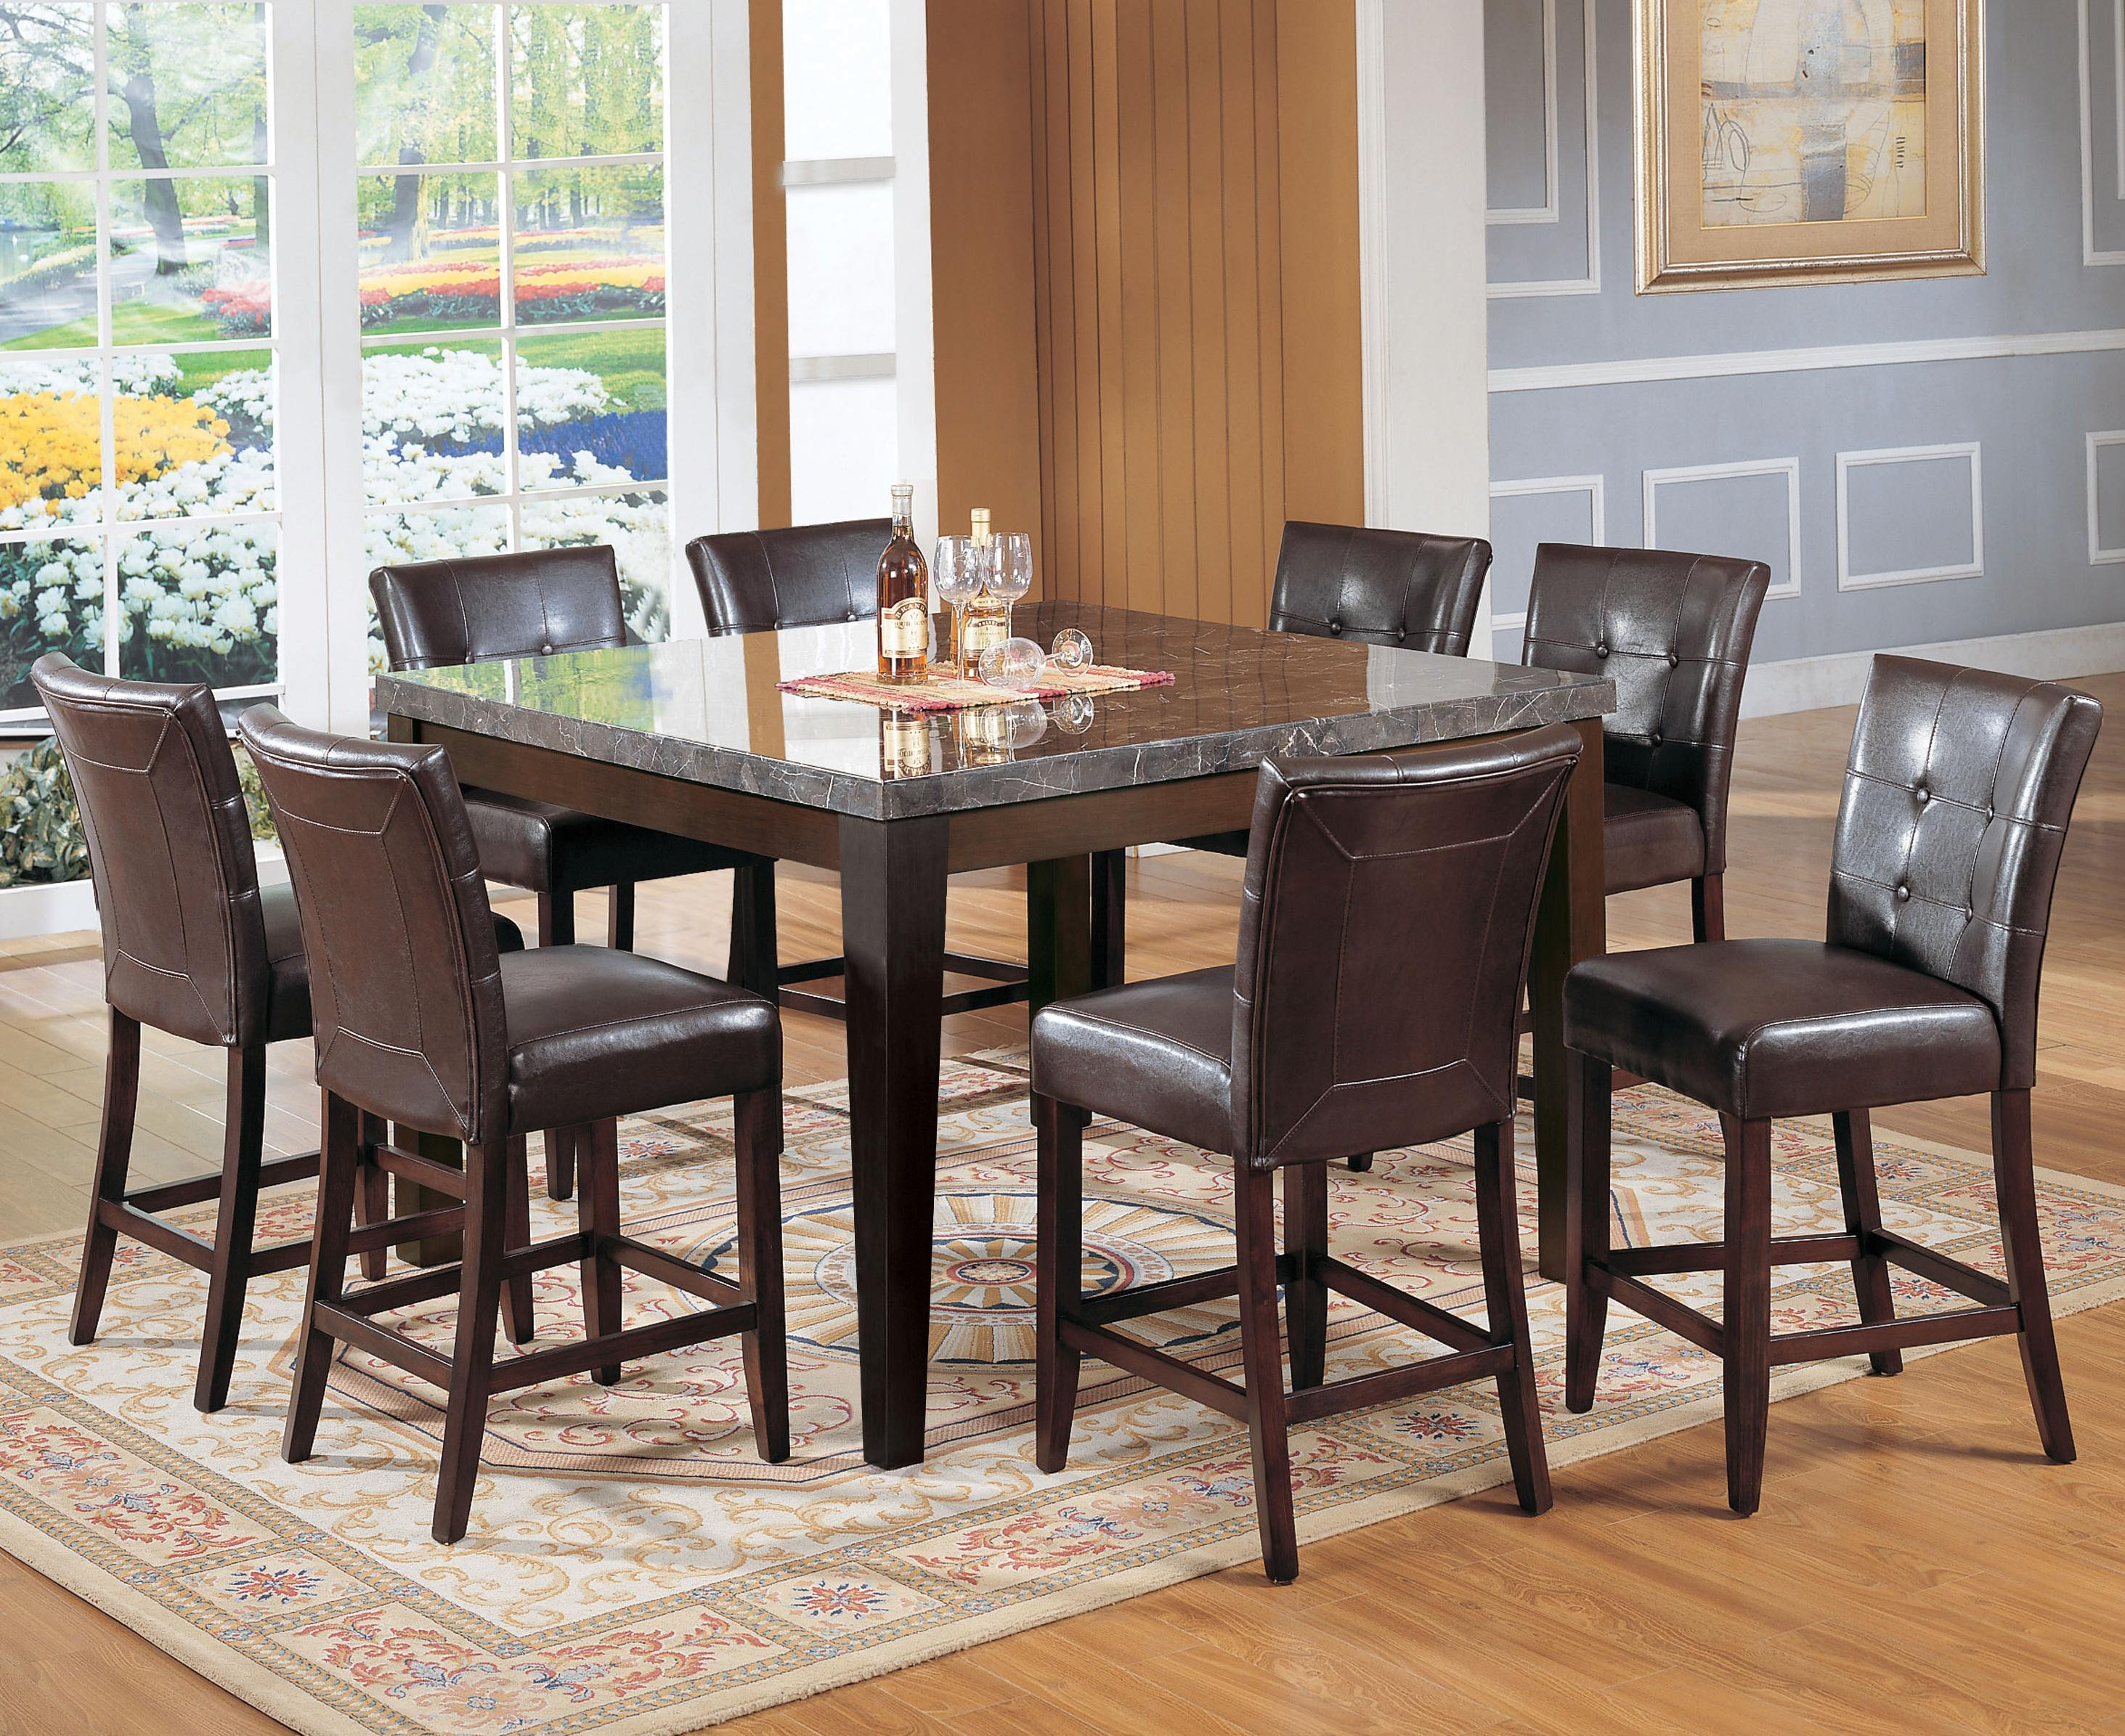 Canville Nine Piece Pub Set by Acme Furniture at Corner Furniture